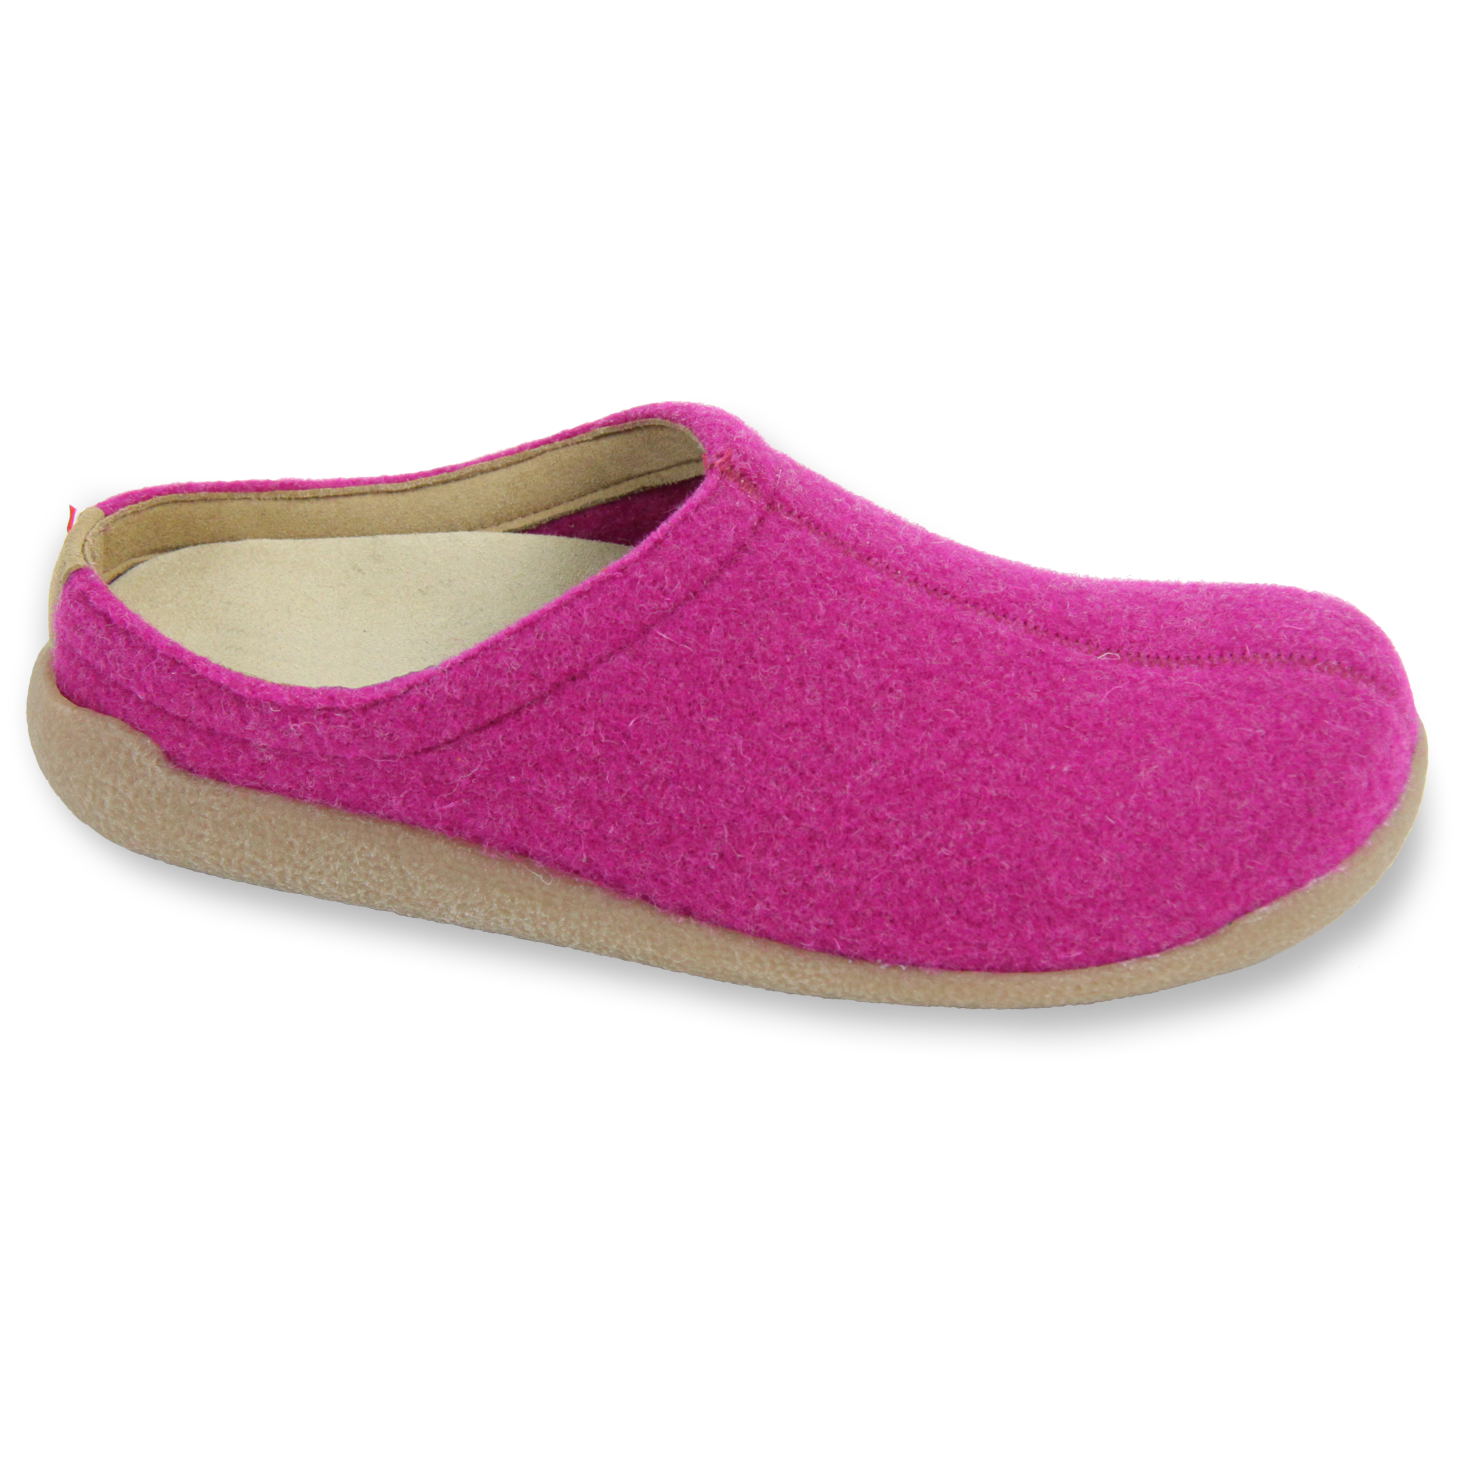 Sanita Lodge Slide Unisex in Fuchsia Slipper